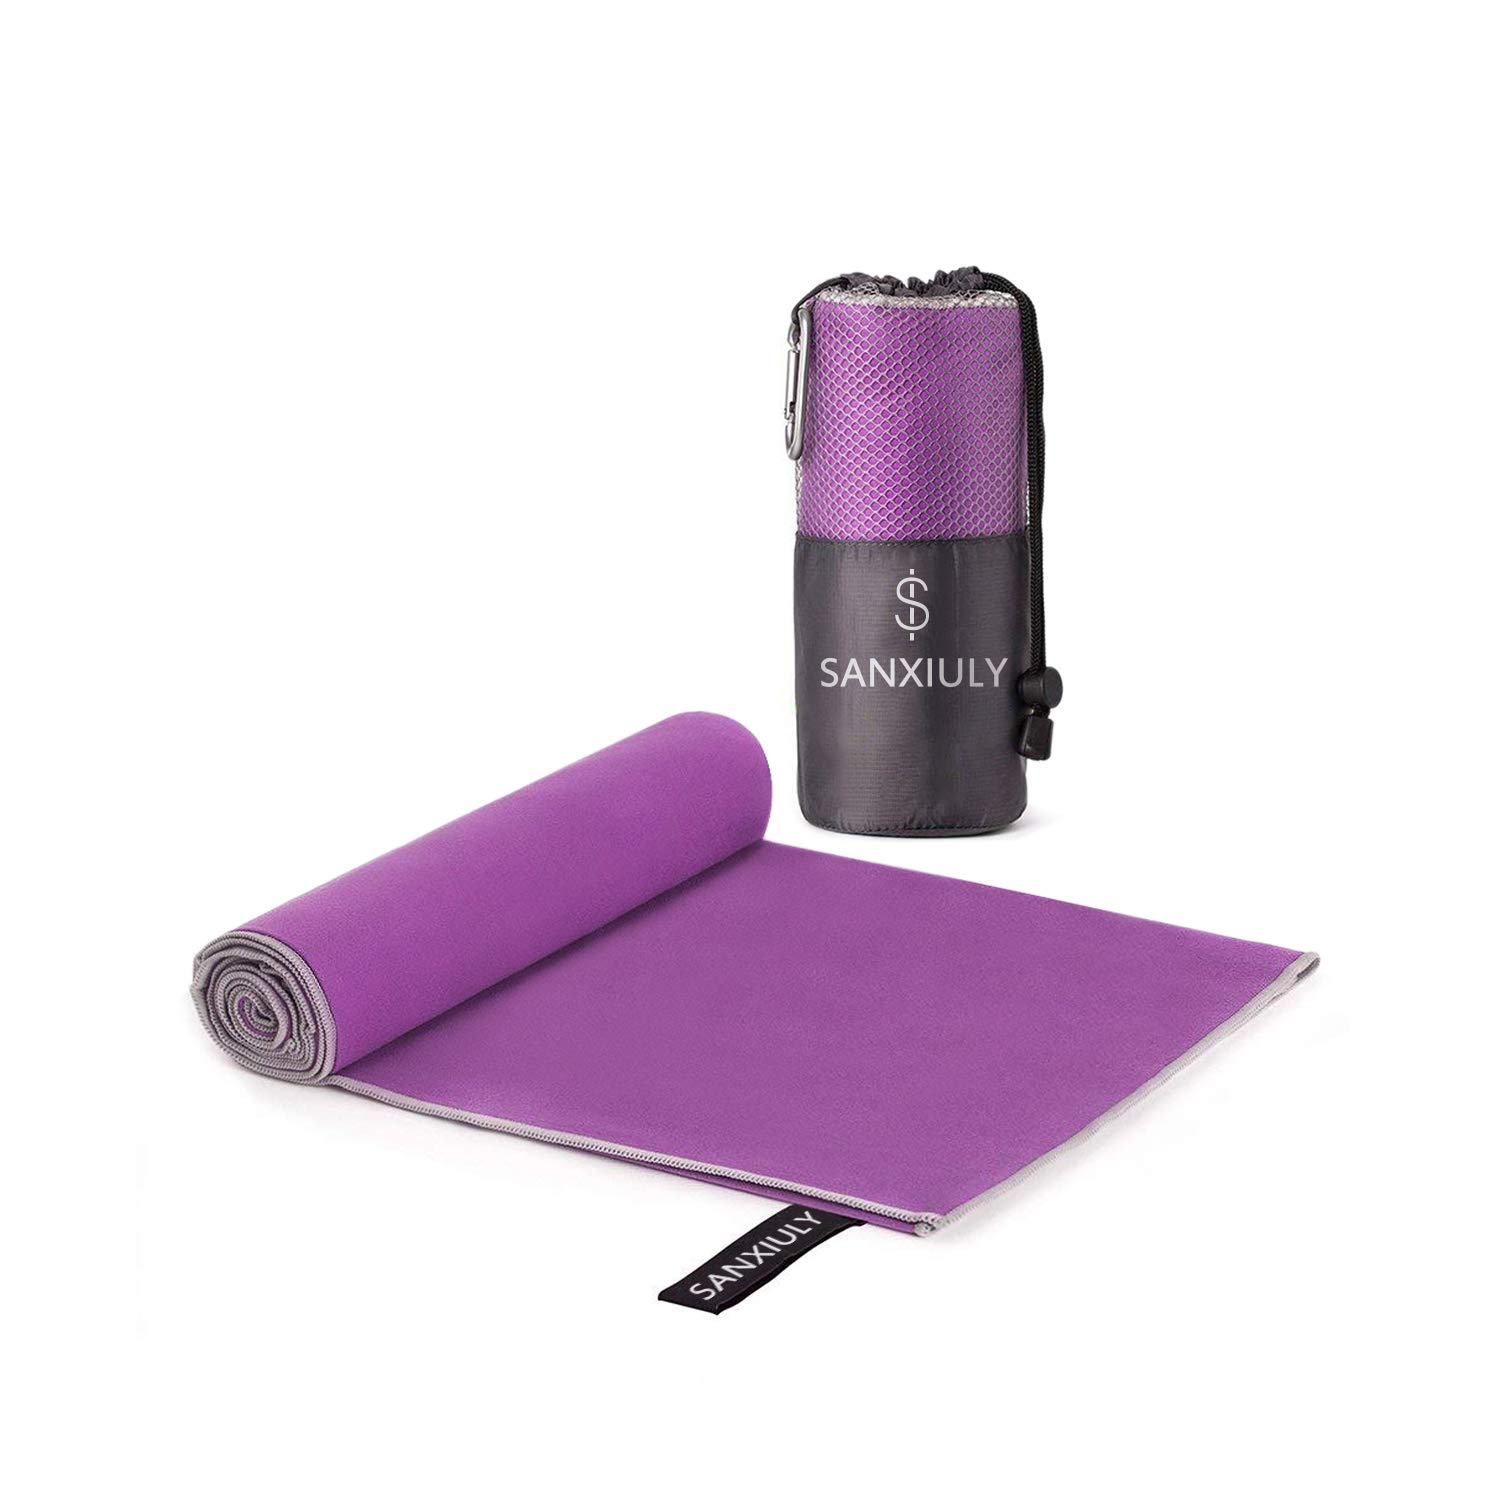 SANXIULY Microfiber Quick Drying Towel for Travel,Camp,Gym,Beach,Swim,Backpacking and More Color Purple Size 2448'' by SANXIULY